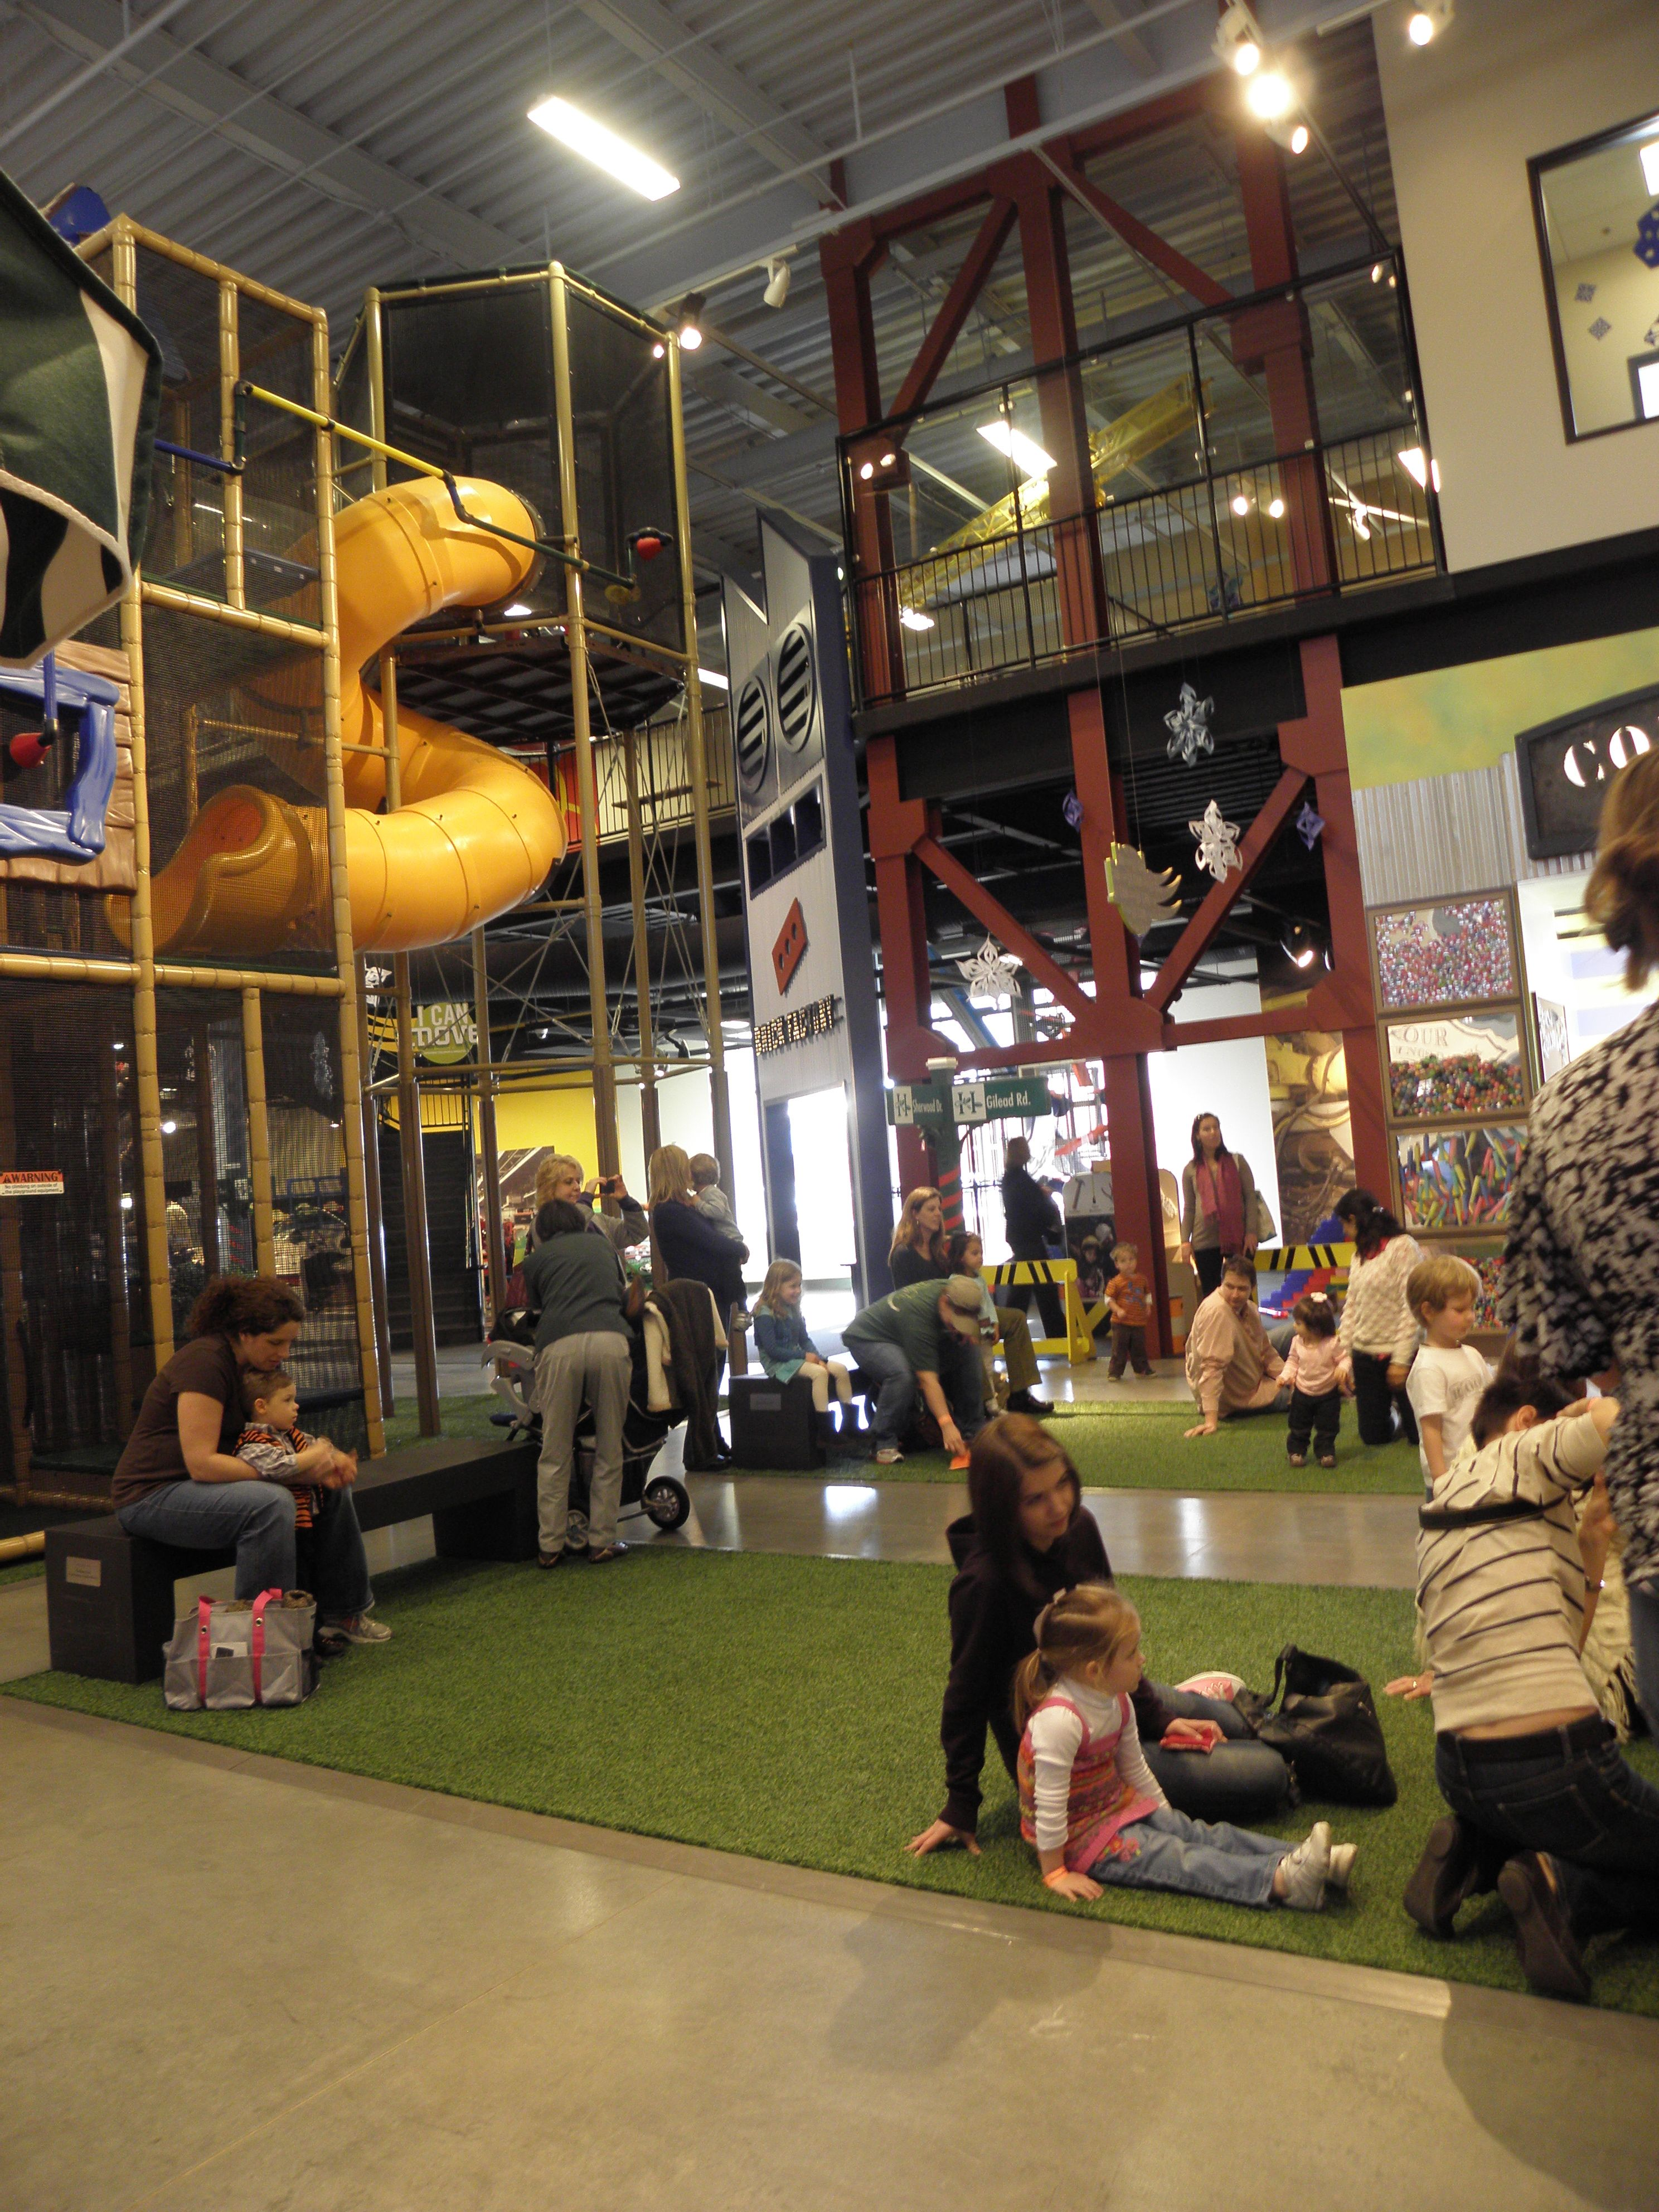 discovery place kids in huntersville it s play time local parks lake norman north carolina huntersville lake norman north carolina